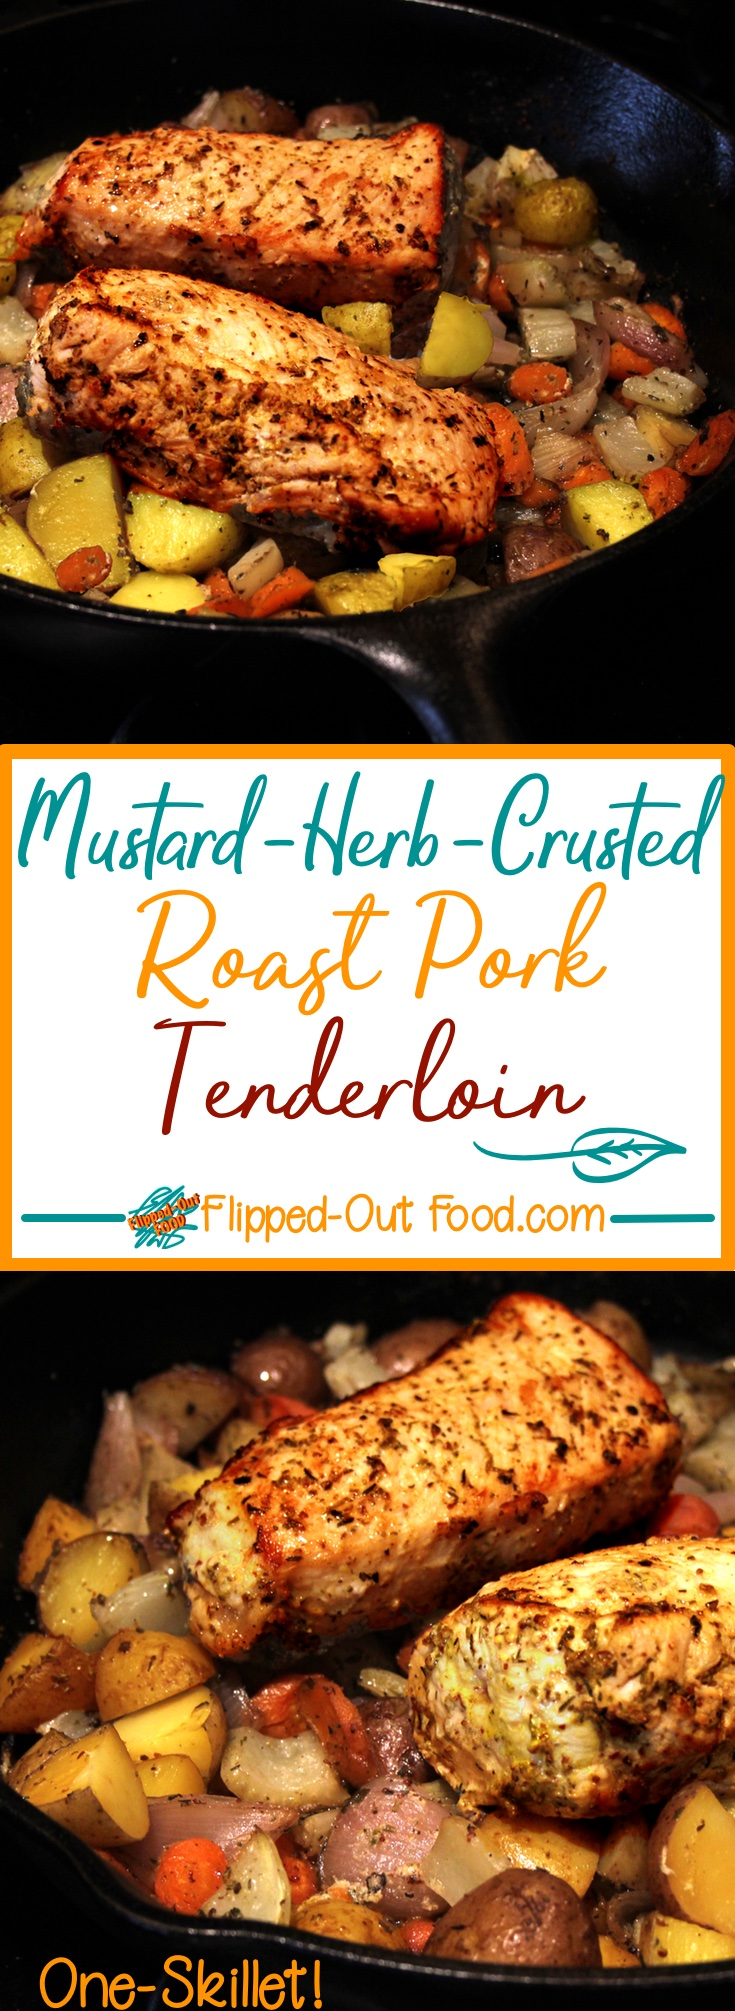 One-Skillet Mustard-Herb-Crusted Roast Pork Tenderloin with Root Vegetables is done in under an hour, making it quick and easy enough for a weeknight!